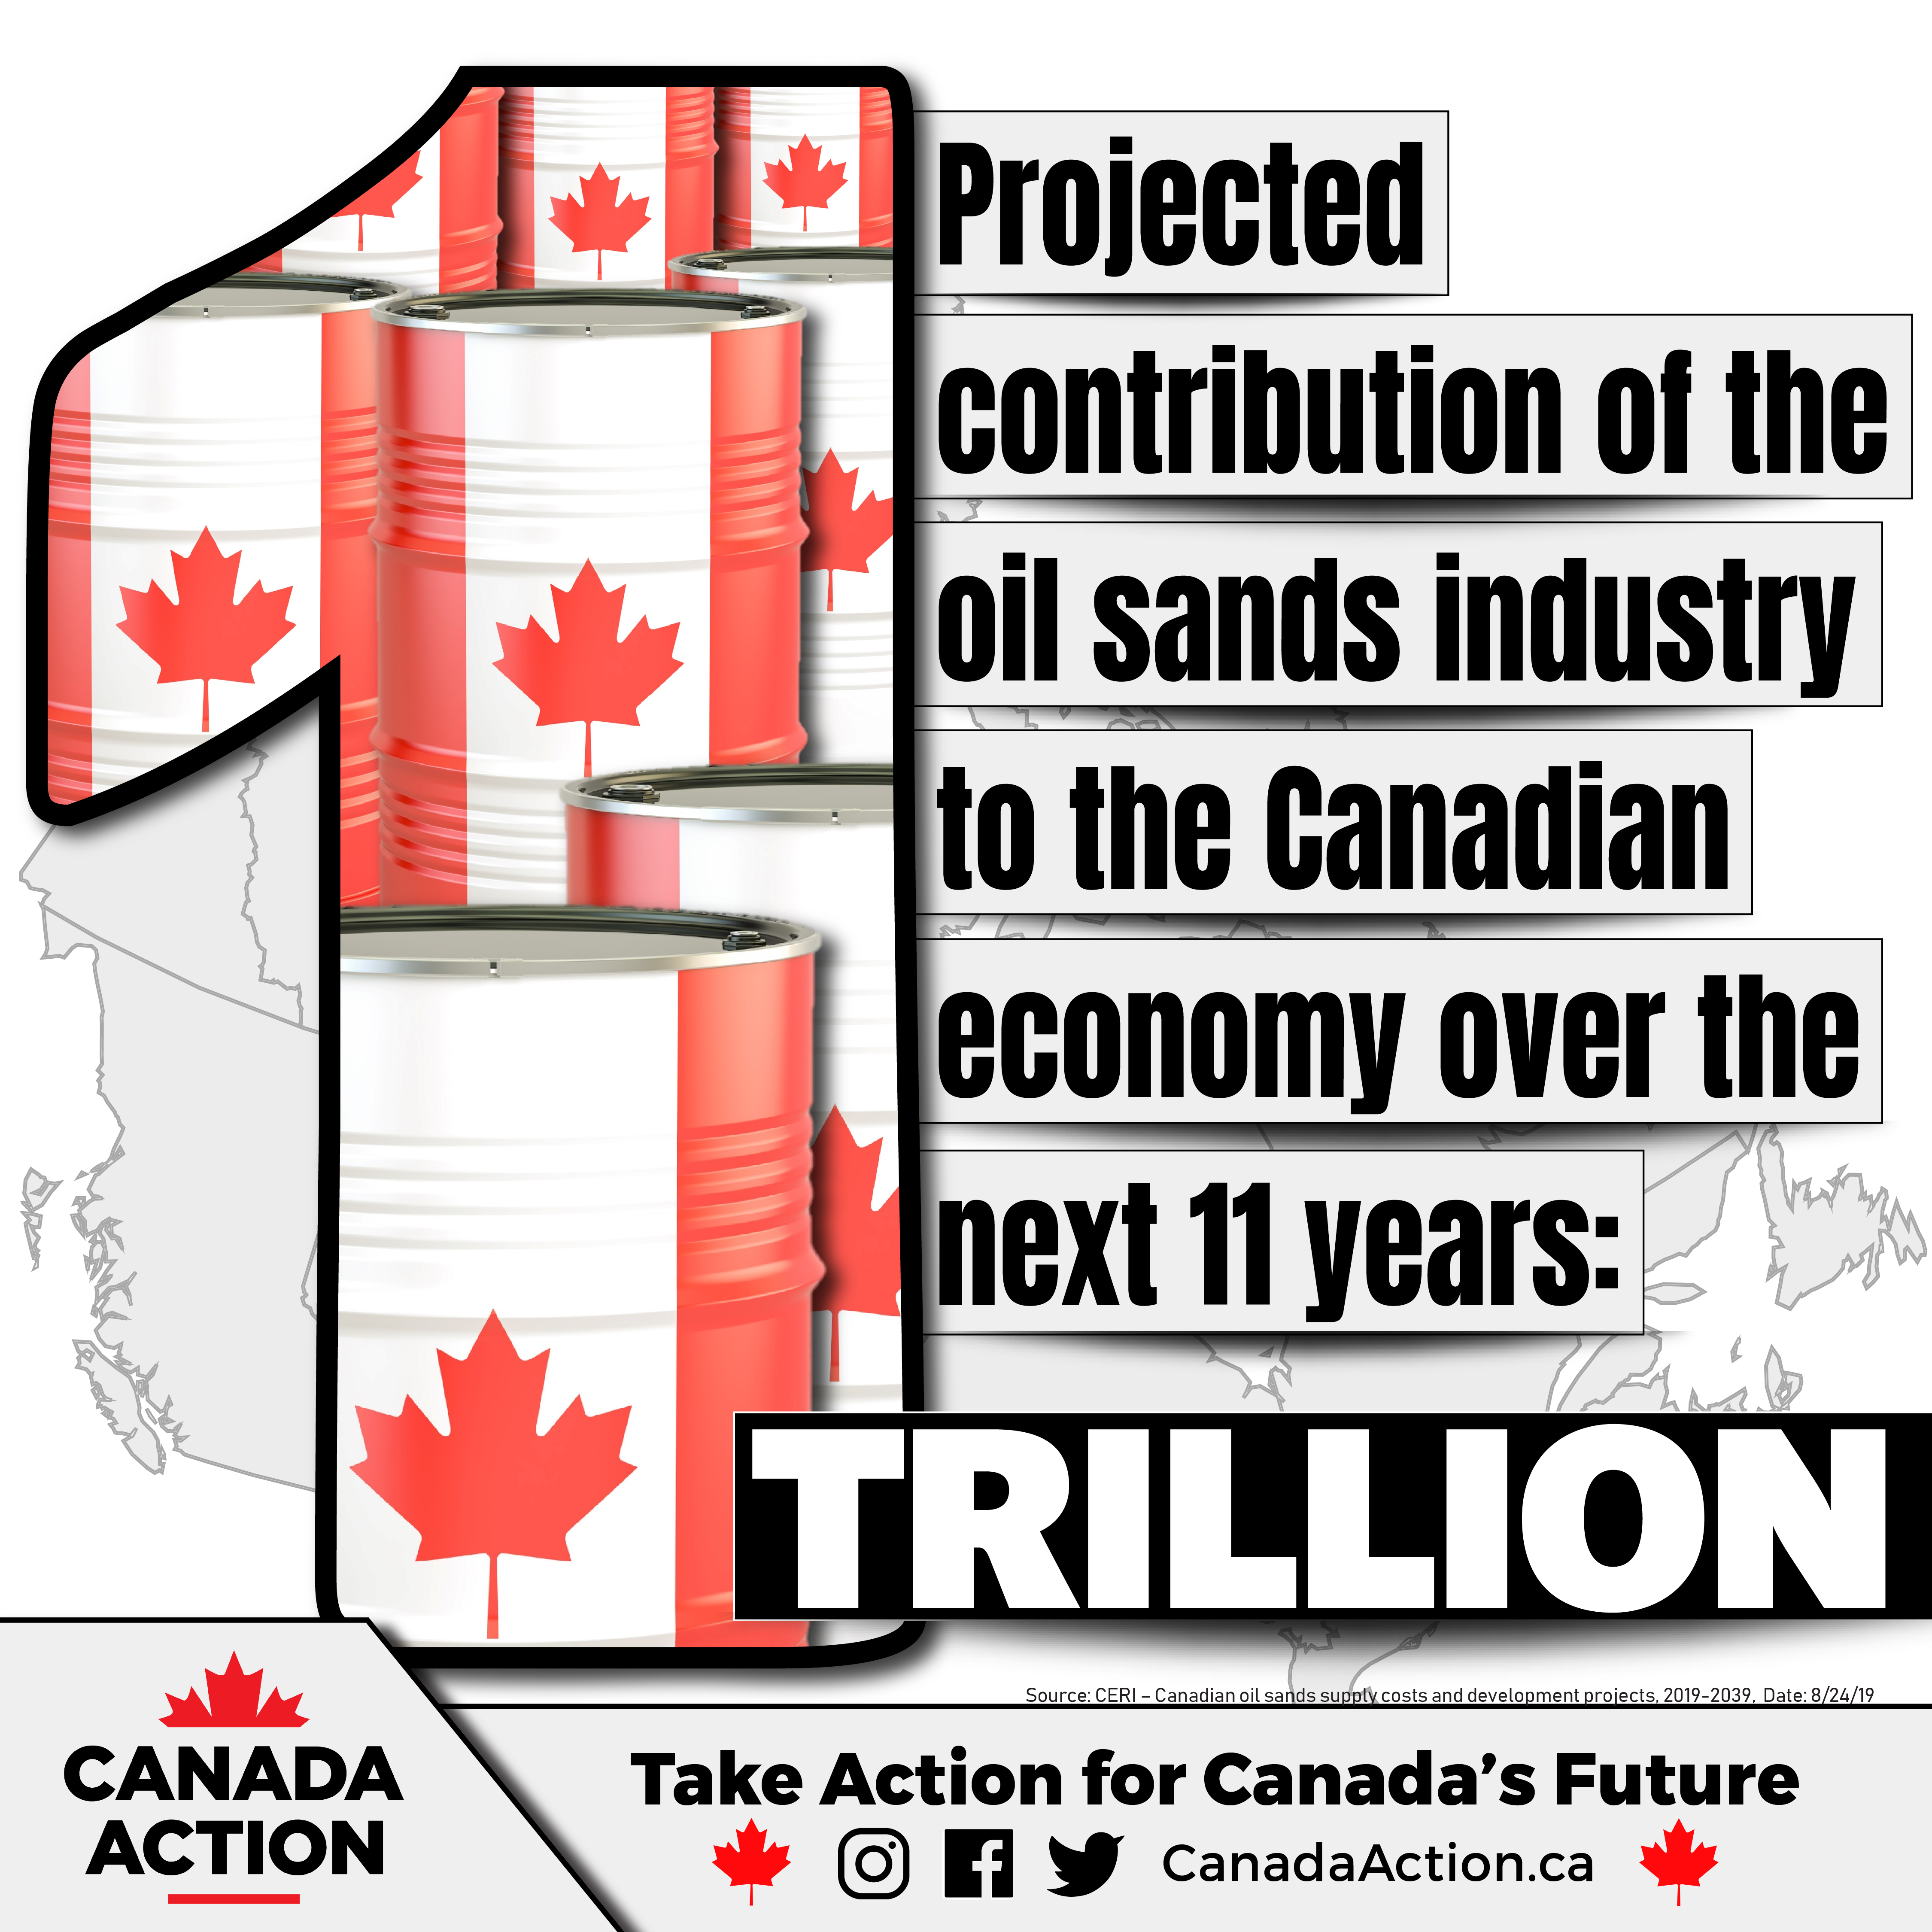 CERI - Oil Sands Industry will contribute $1.01 trillion to the Canadian Economy from 2019-2029